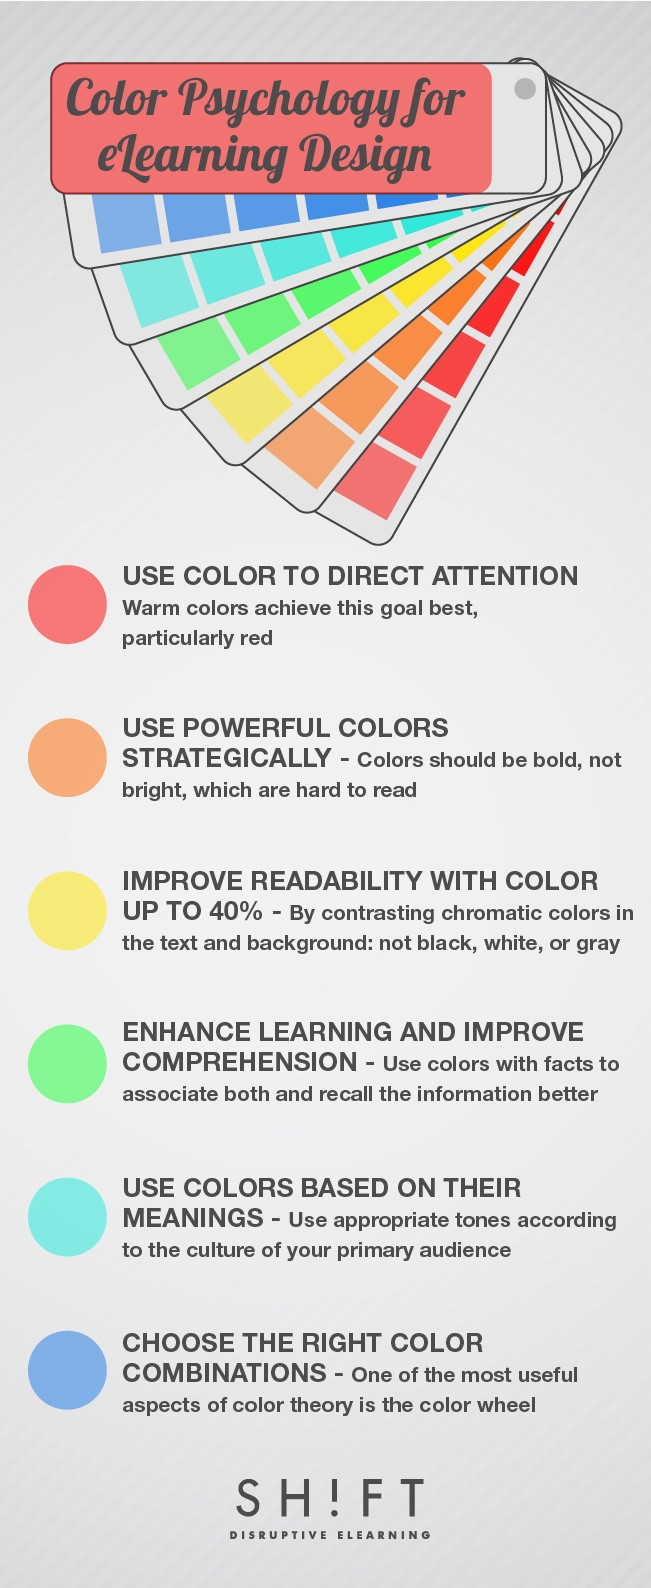 Color-Psychology-for-eLearning-Design-ok-01